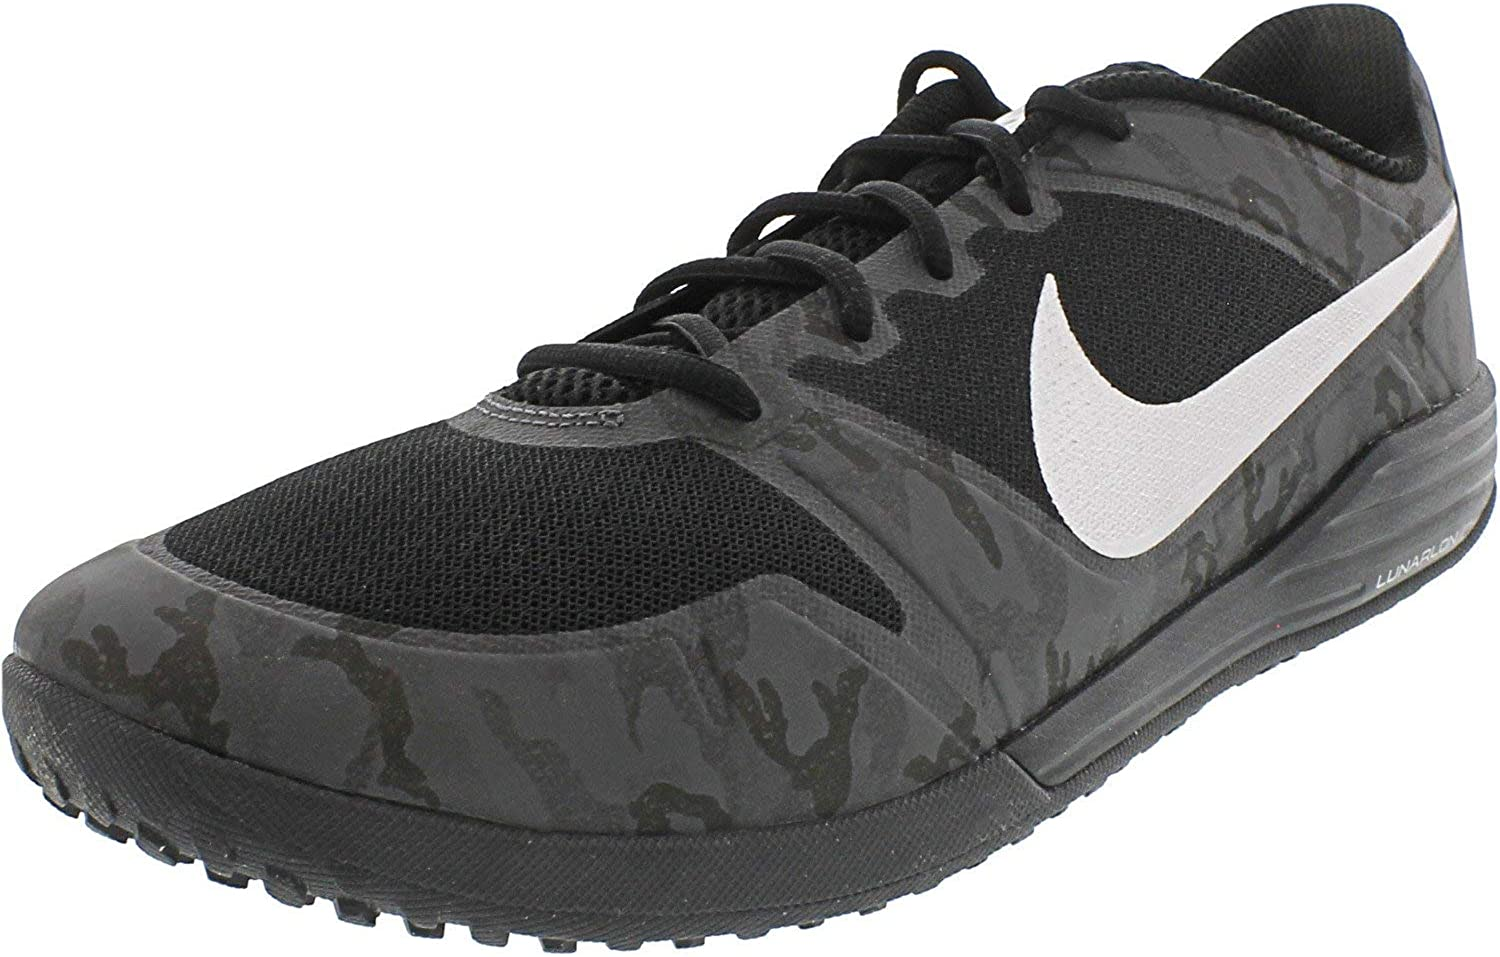 Nike Men's Lunar Ultimate Tr Premium Ankle-High Fabric Training shoes